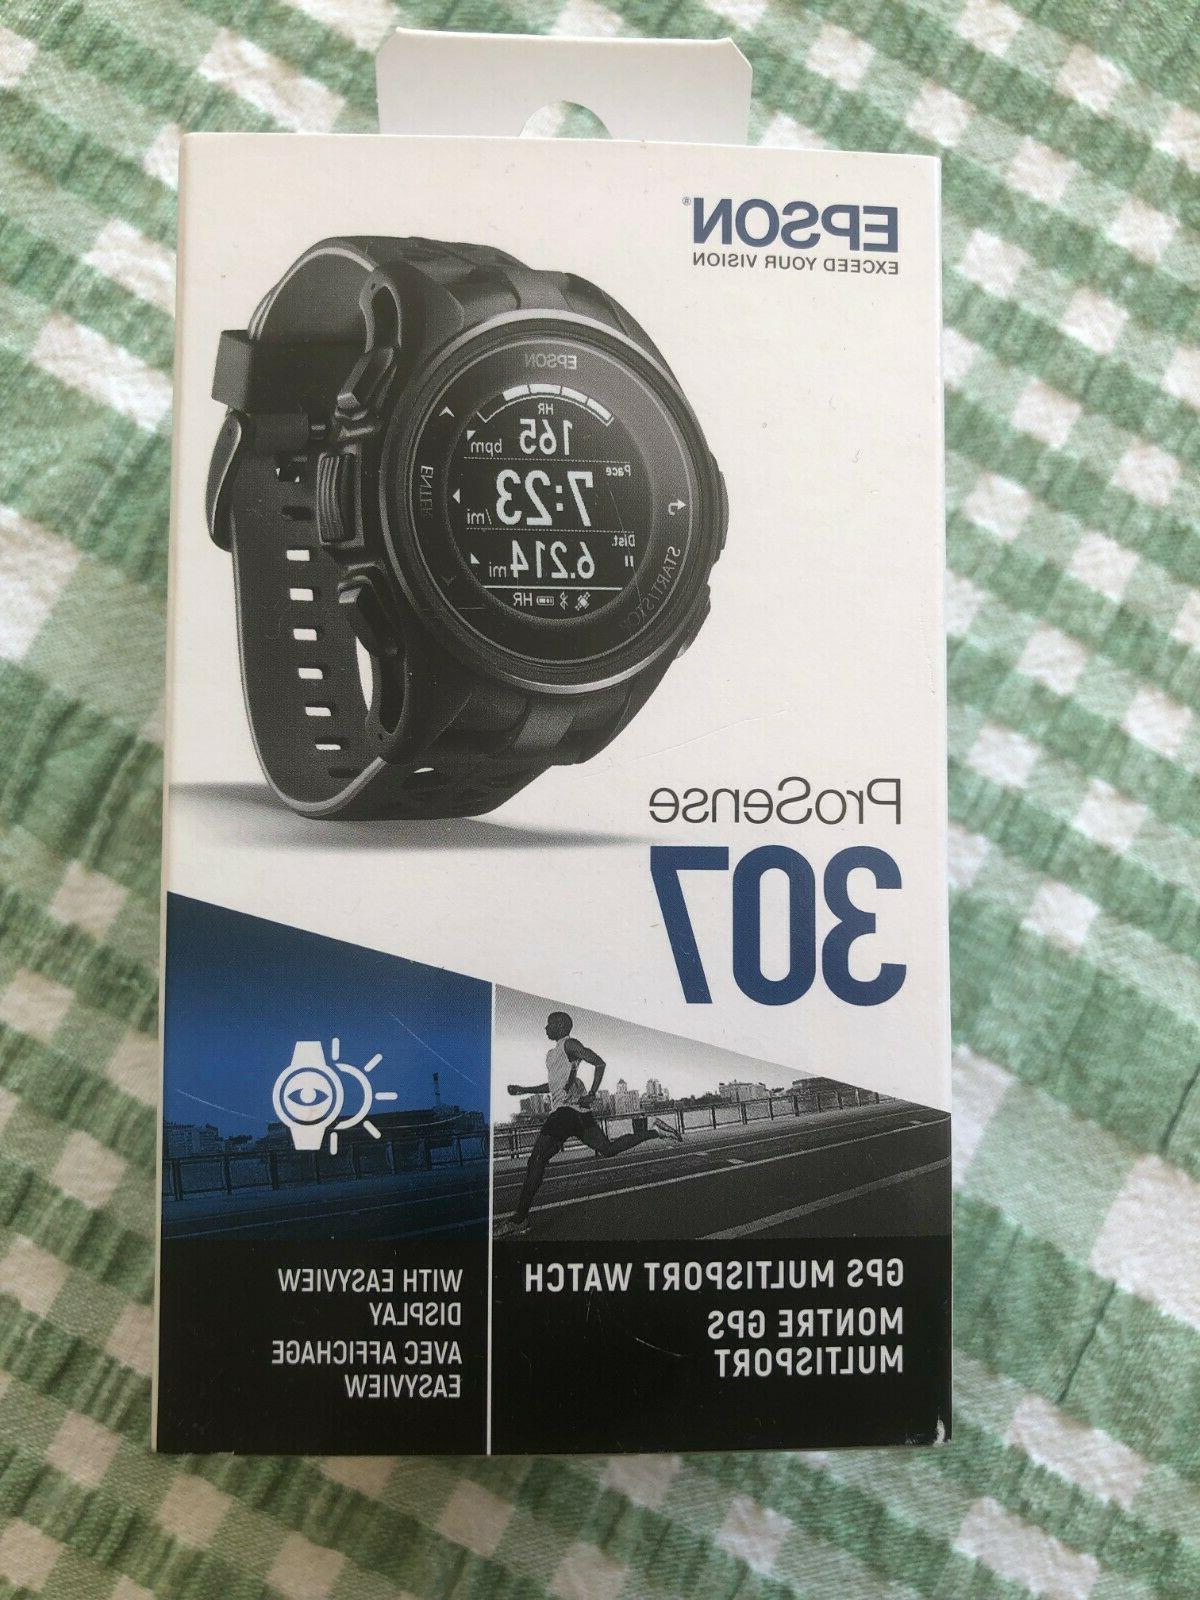 Epson ProSense 307 GPS Multisport Watch with Heart Rate and